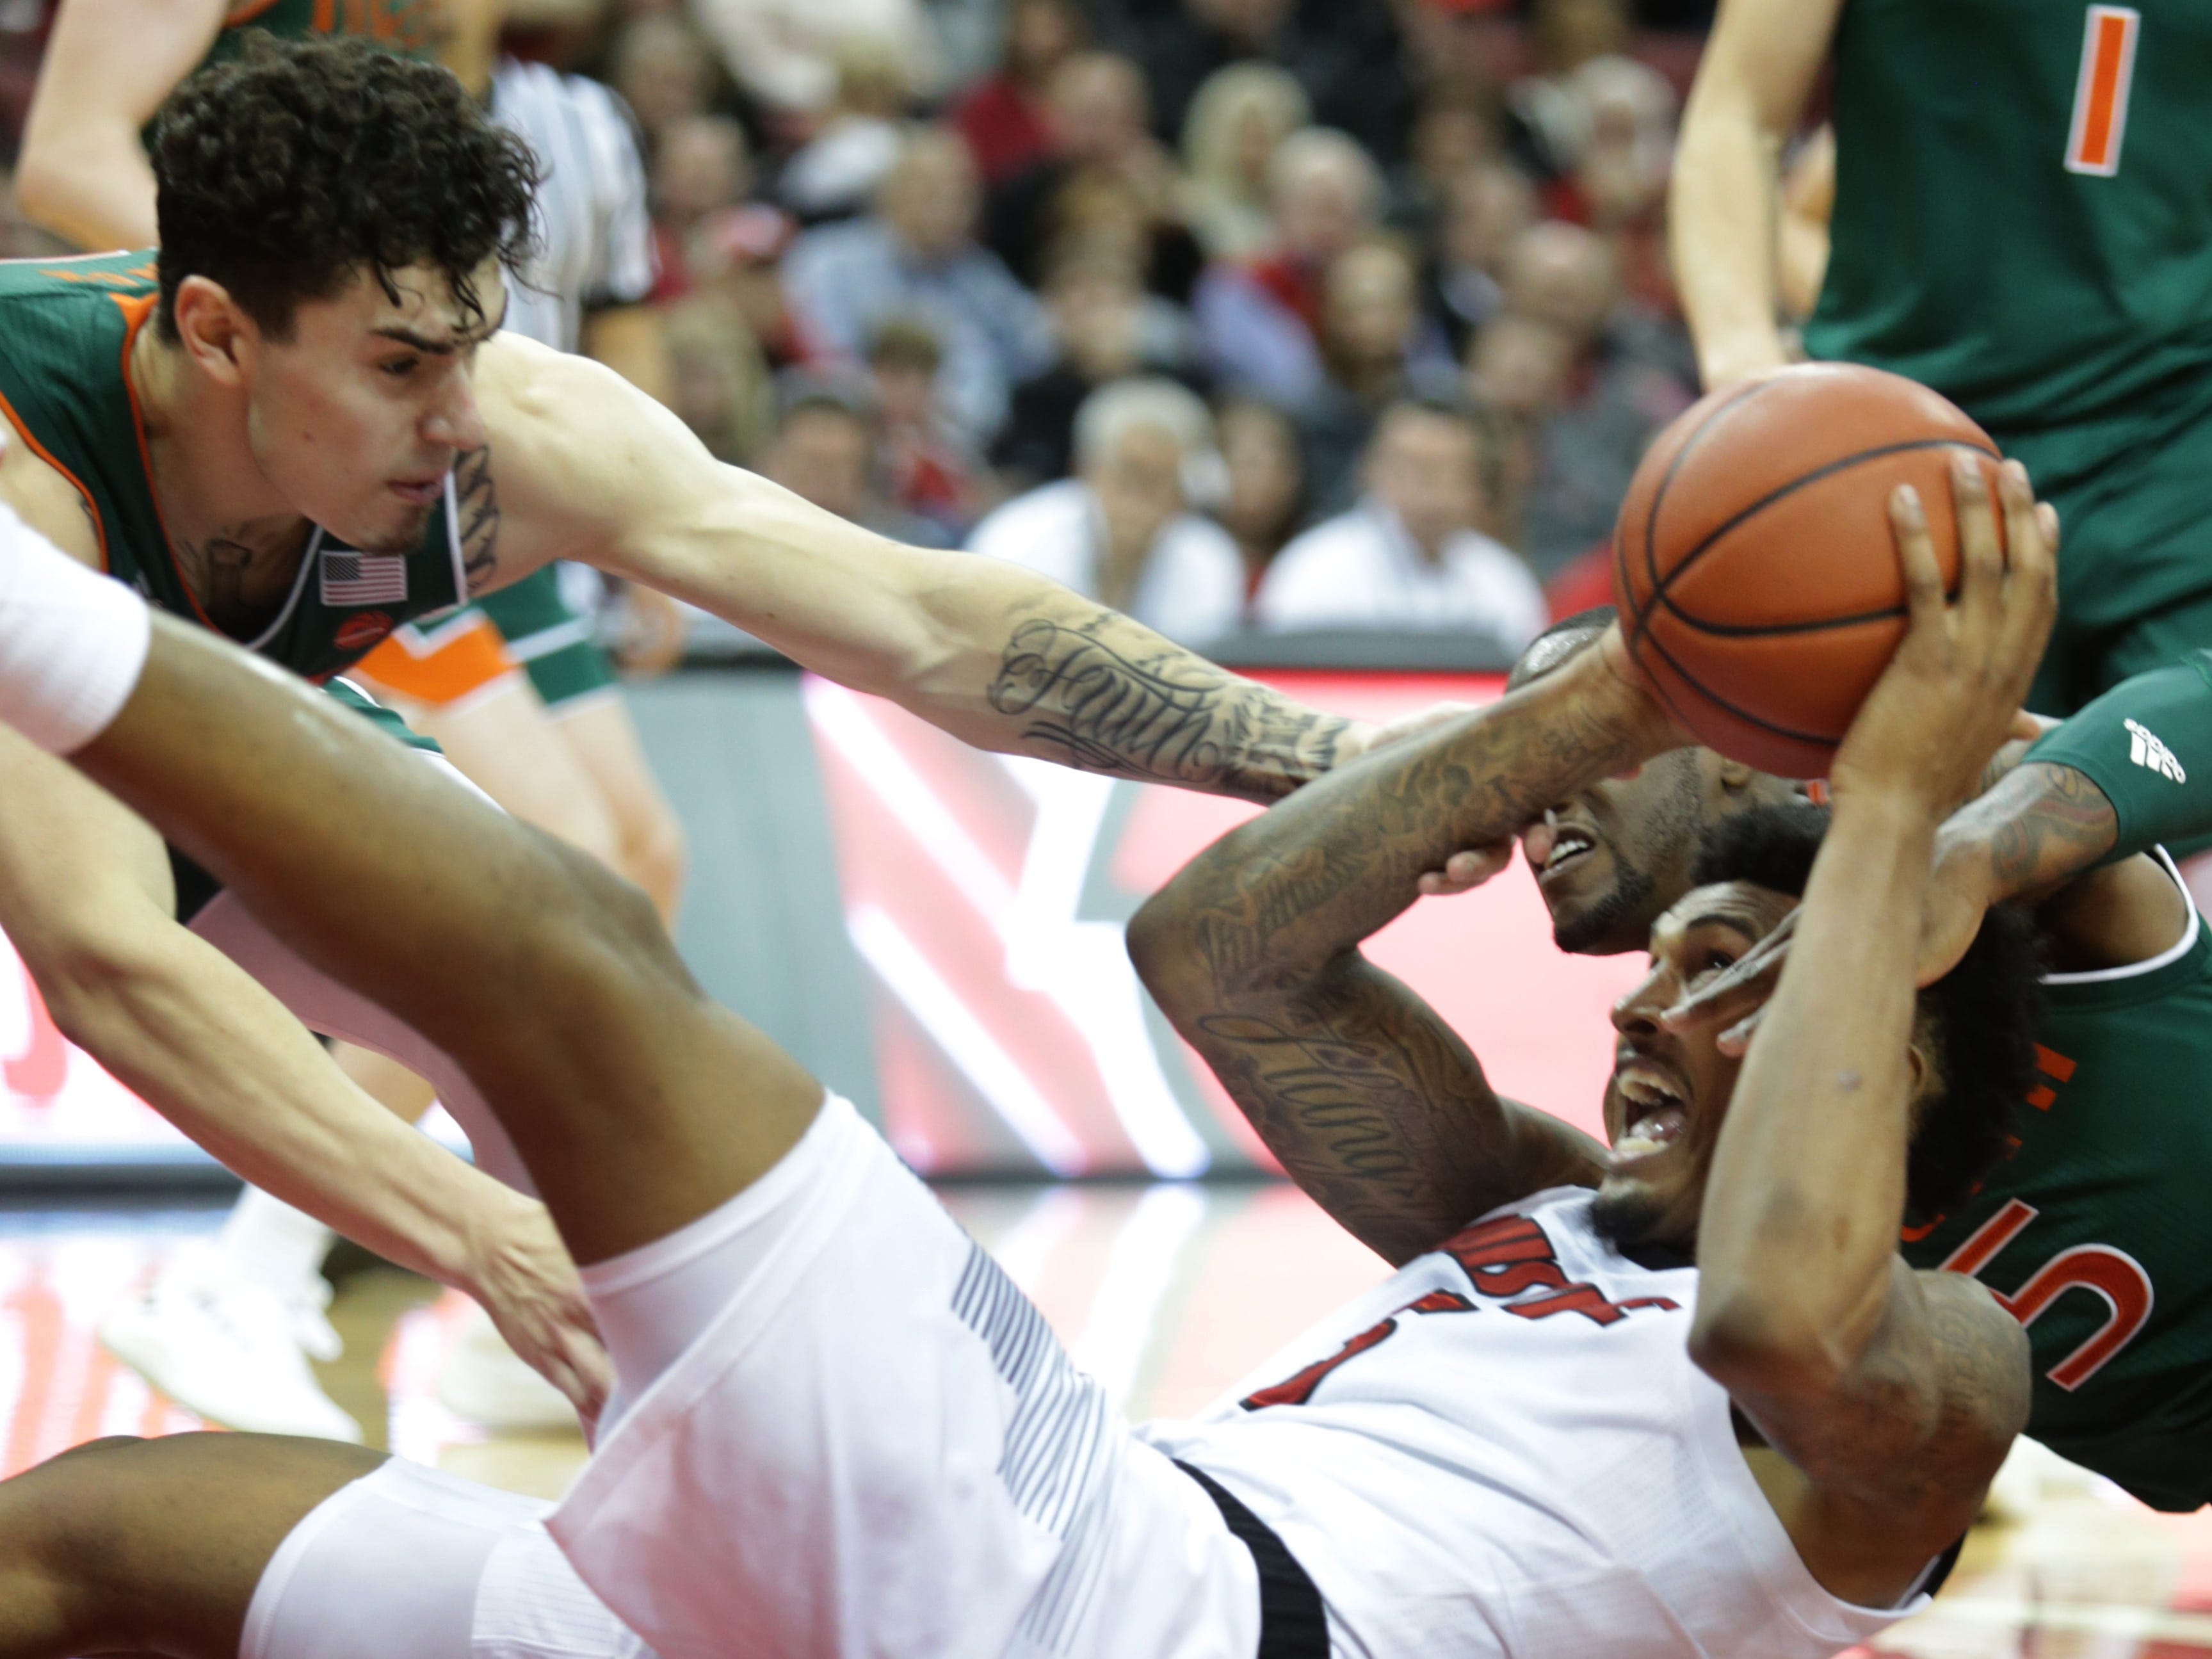 Louisville's Malik Williams right, battles for a loose ball against Miami's Anthony Mack, left. Jan. 6, 2019.